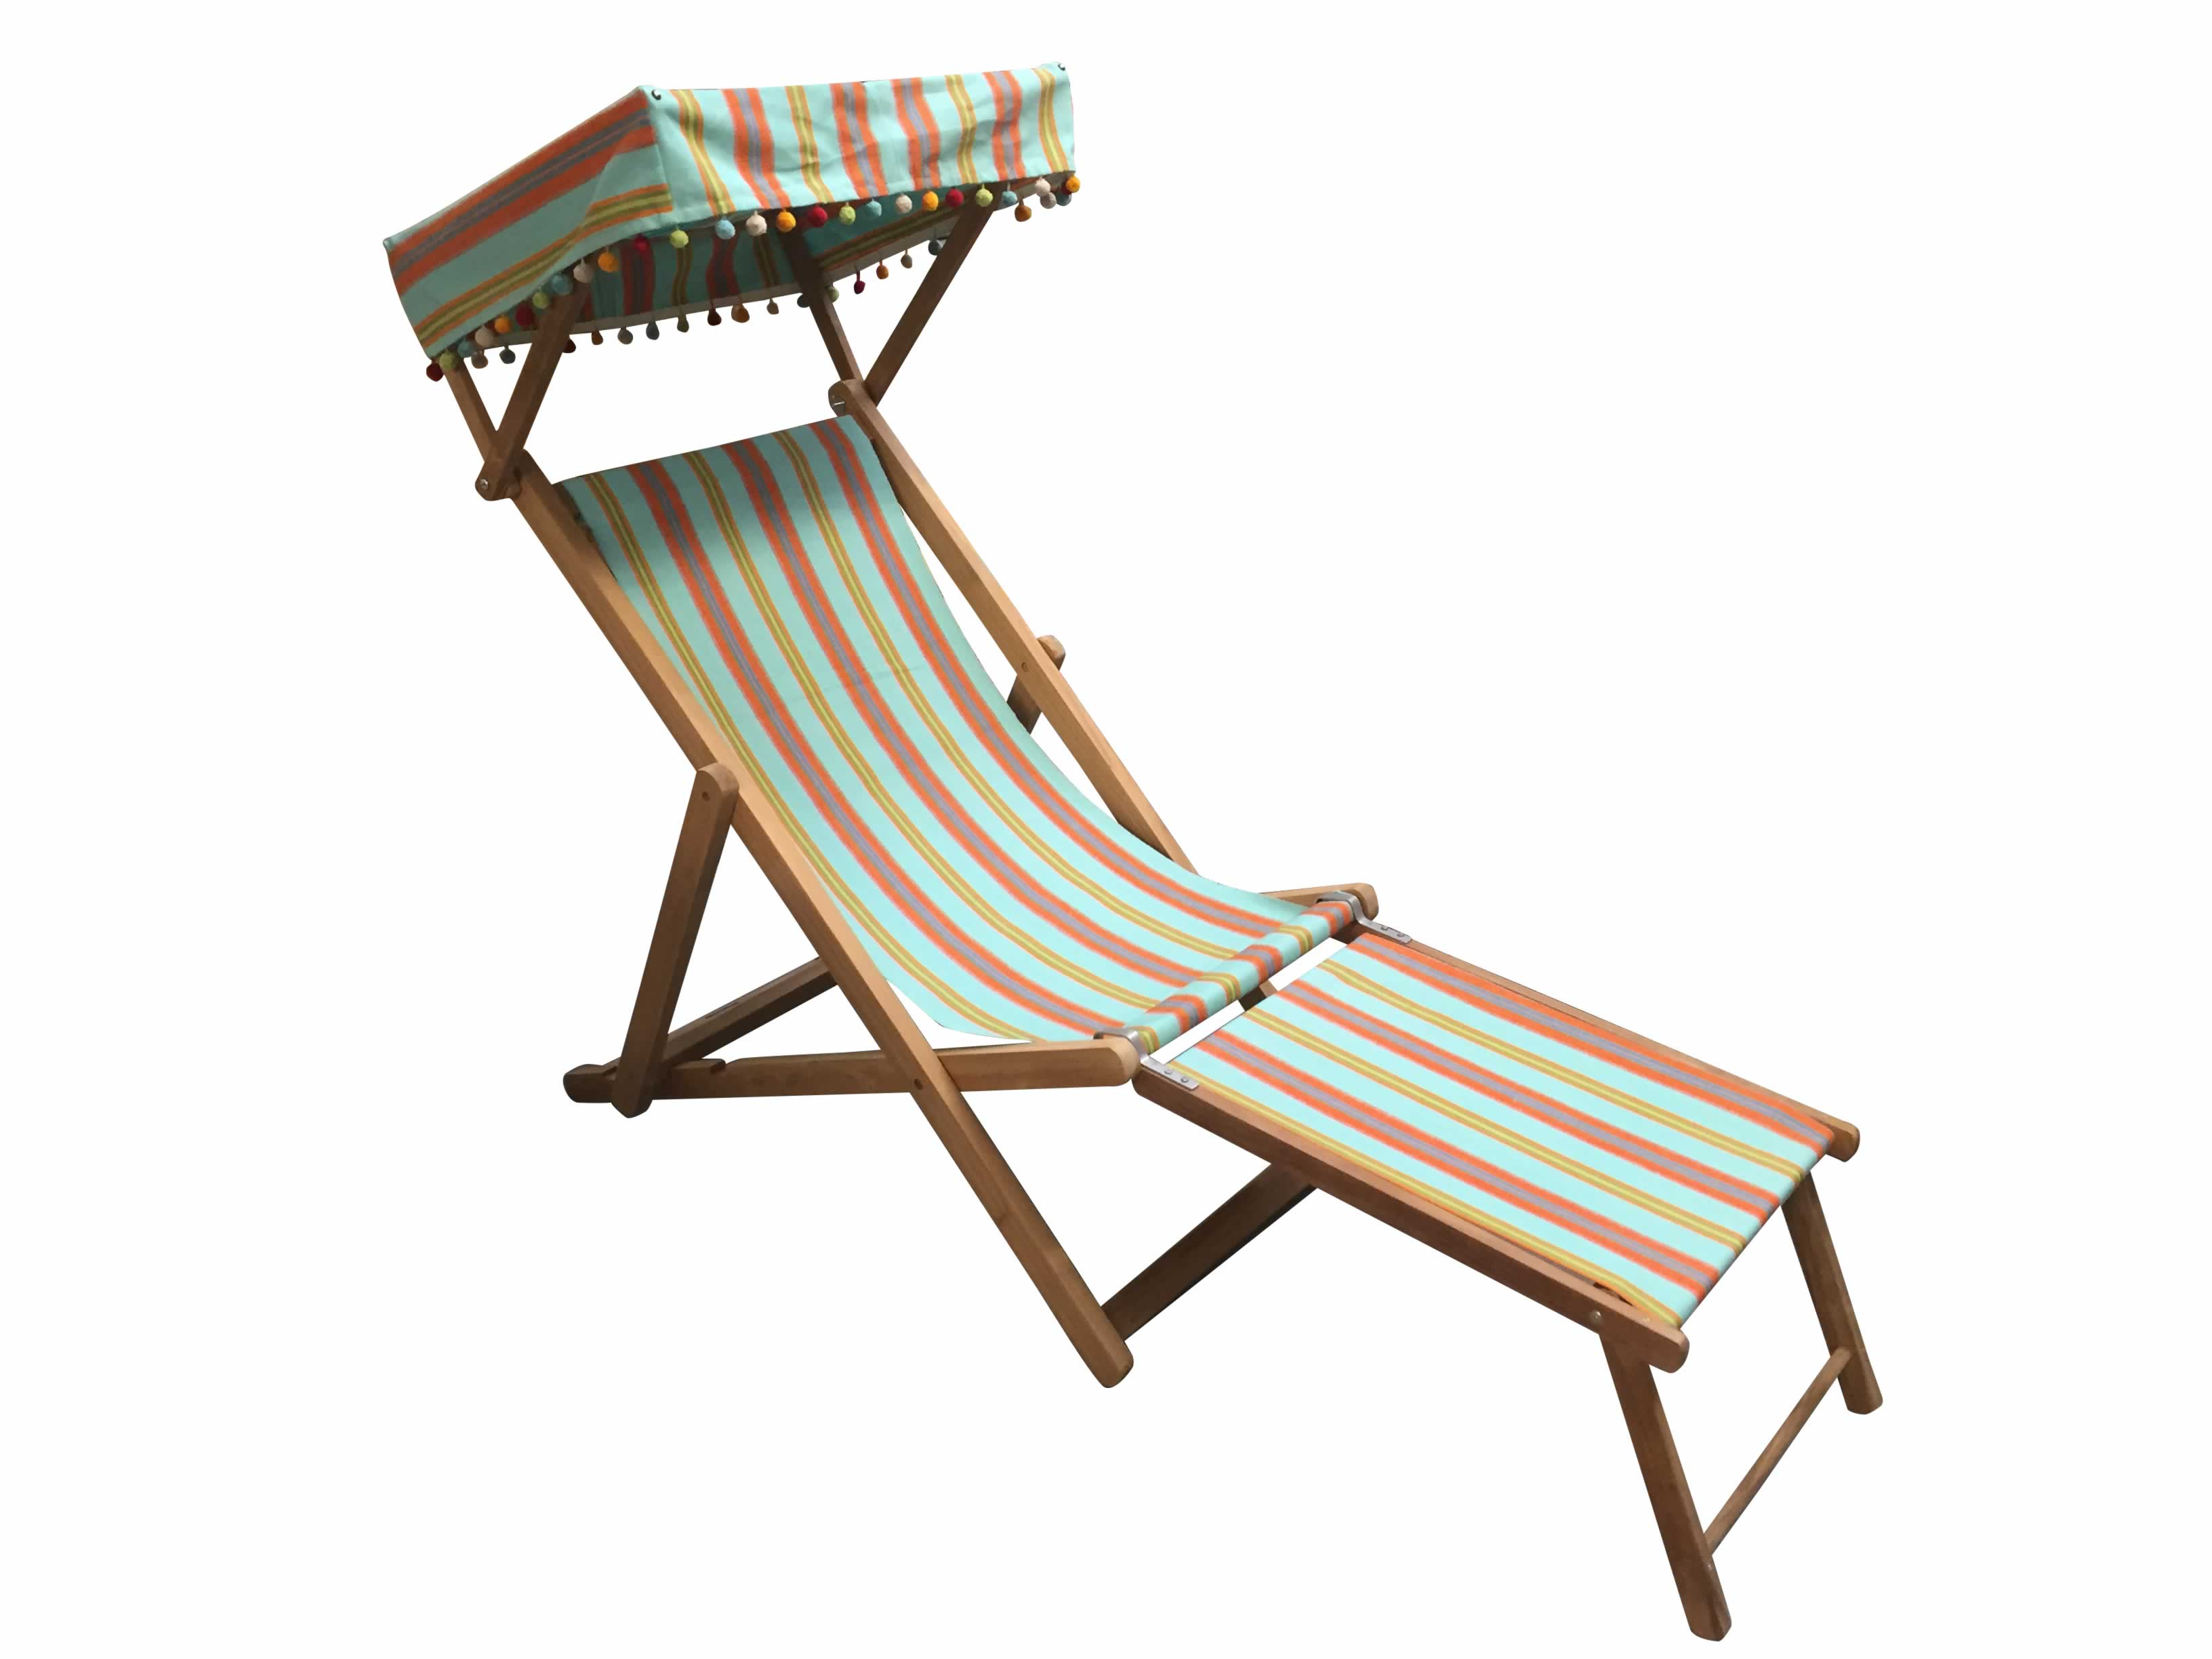 Petanque Turquoise Edwardian Deckchairs with Canopy and Footstool